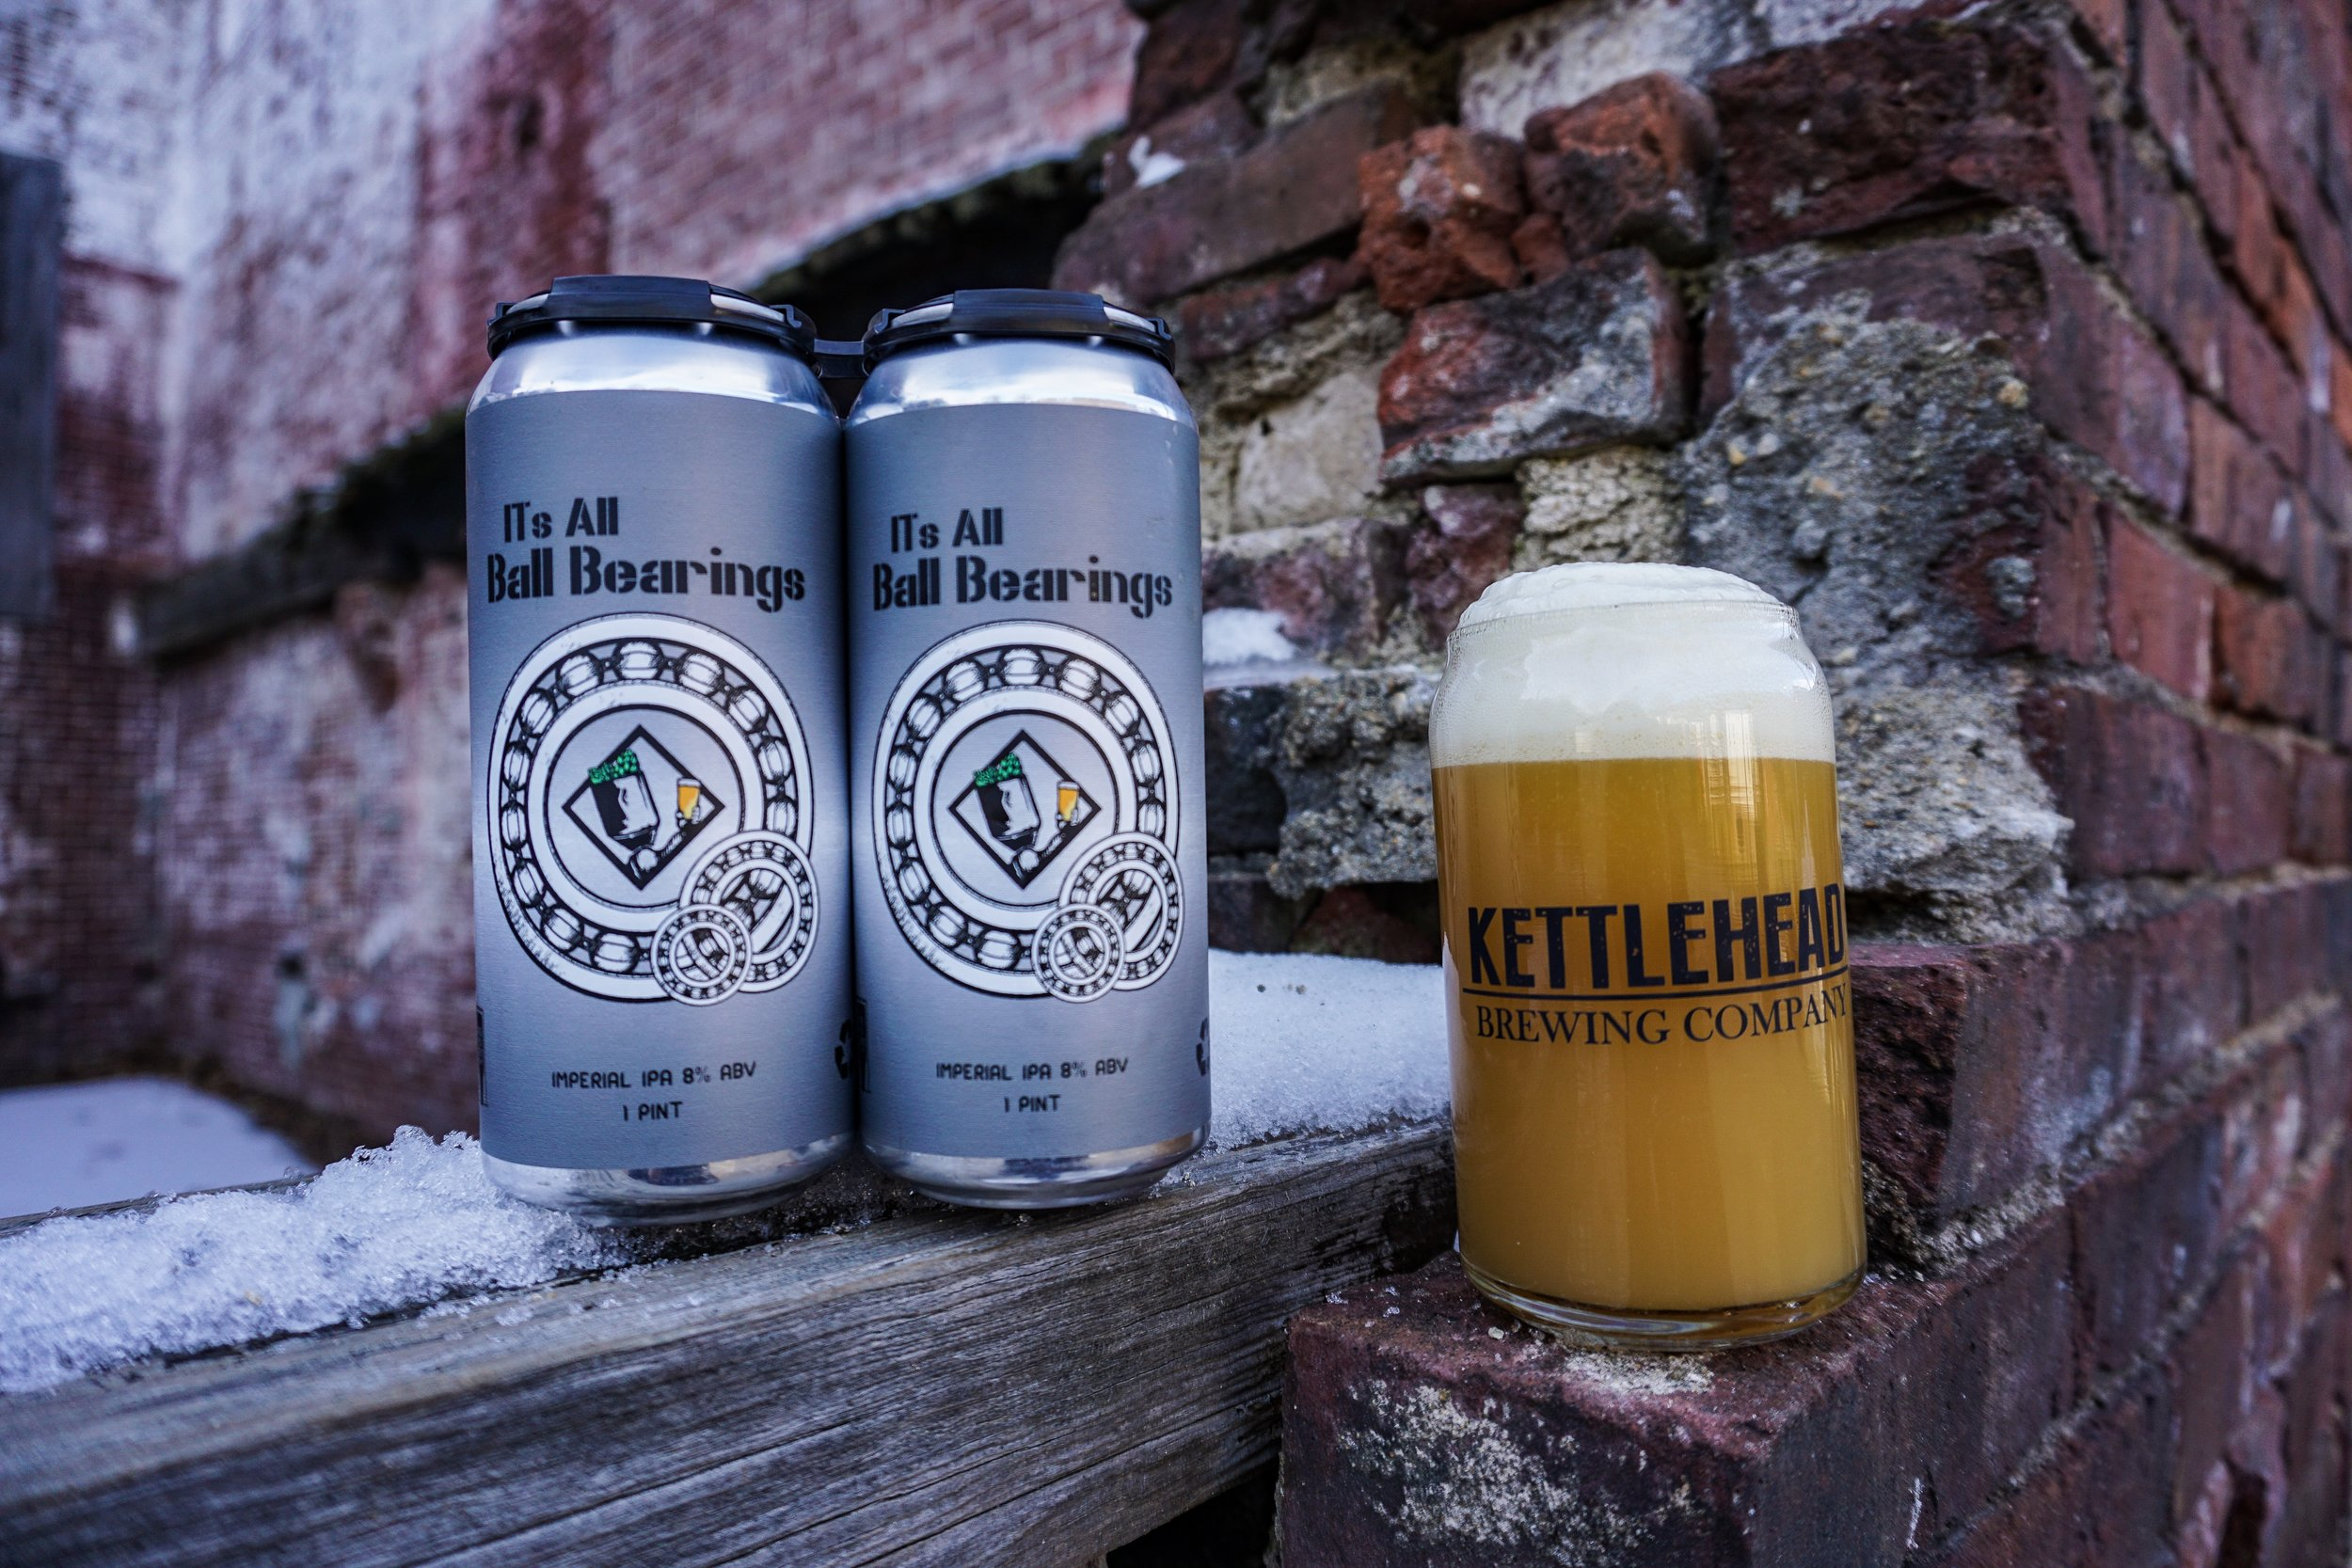 Its All Ball Bearings DIPA, 8% ABV - Another throw back homebrewing recipe. A new double ipa for the new year. Big mango, pineapple, and ripe tropical fruit flavors dominate the nose and pallet. Made with a new yeast profile, different from our other DIPAS. Simcoe, mosaic and citra hops.